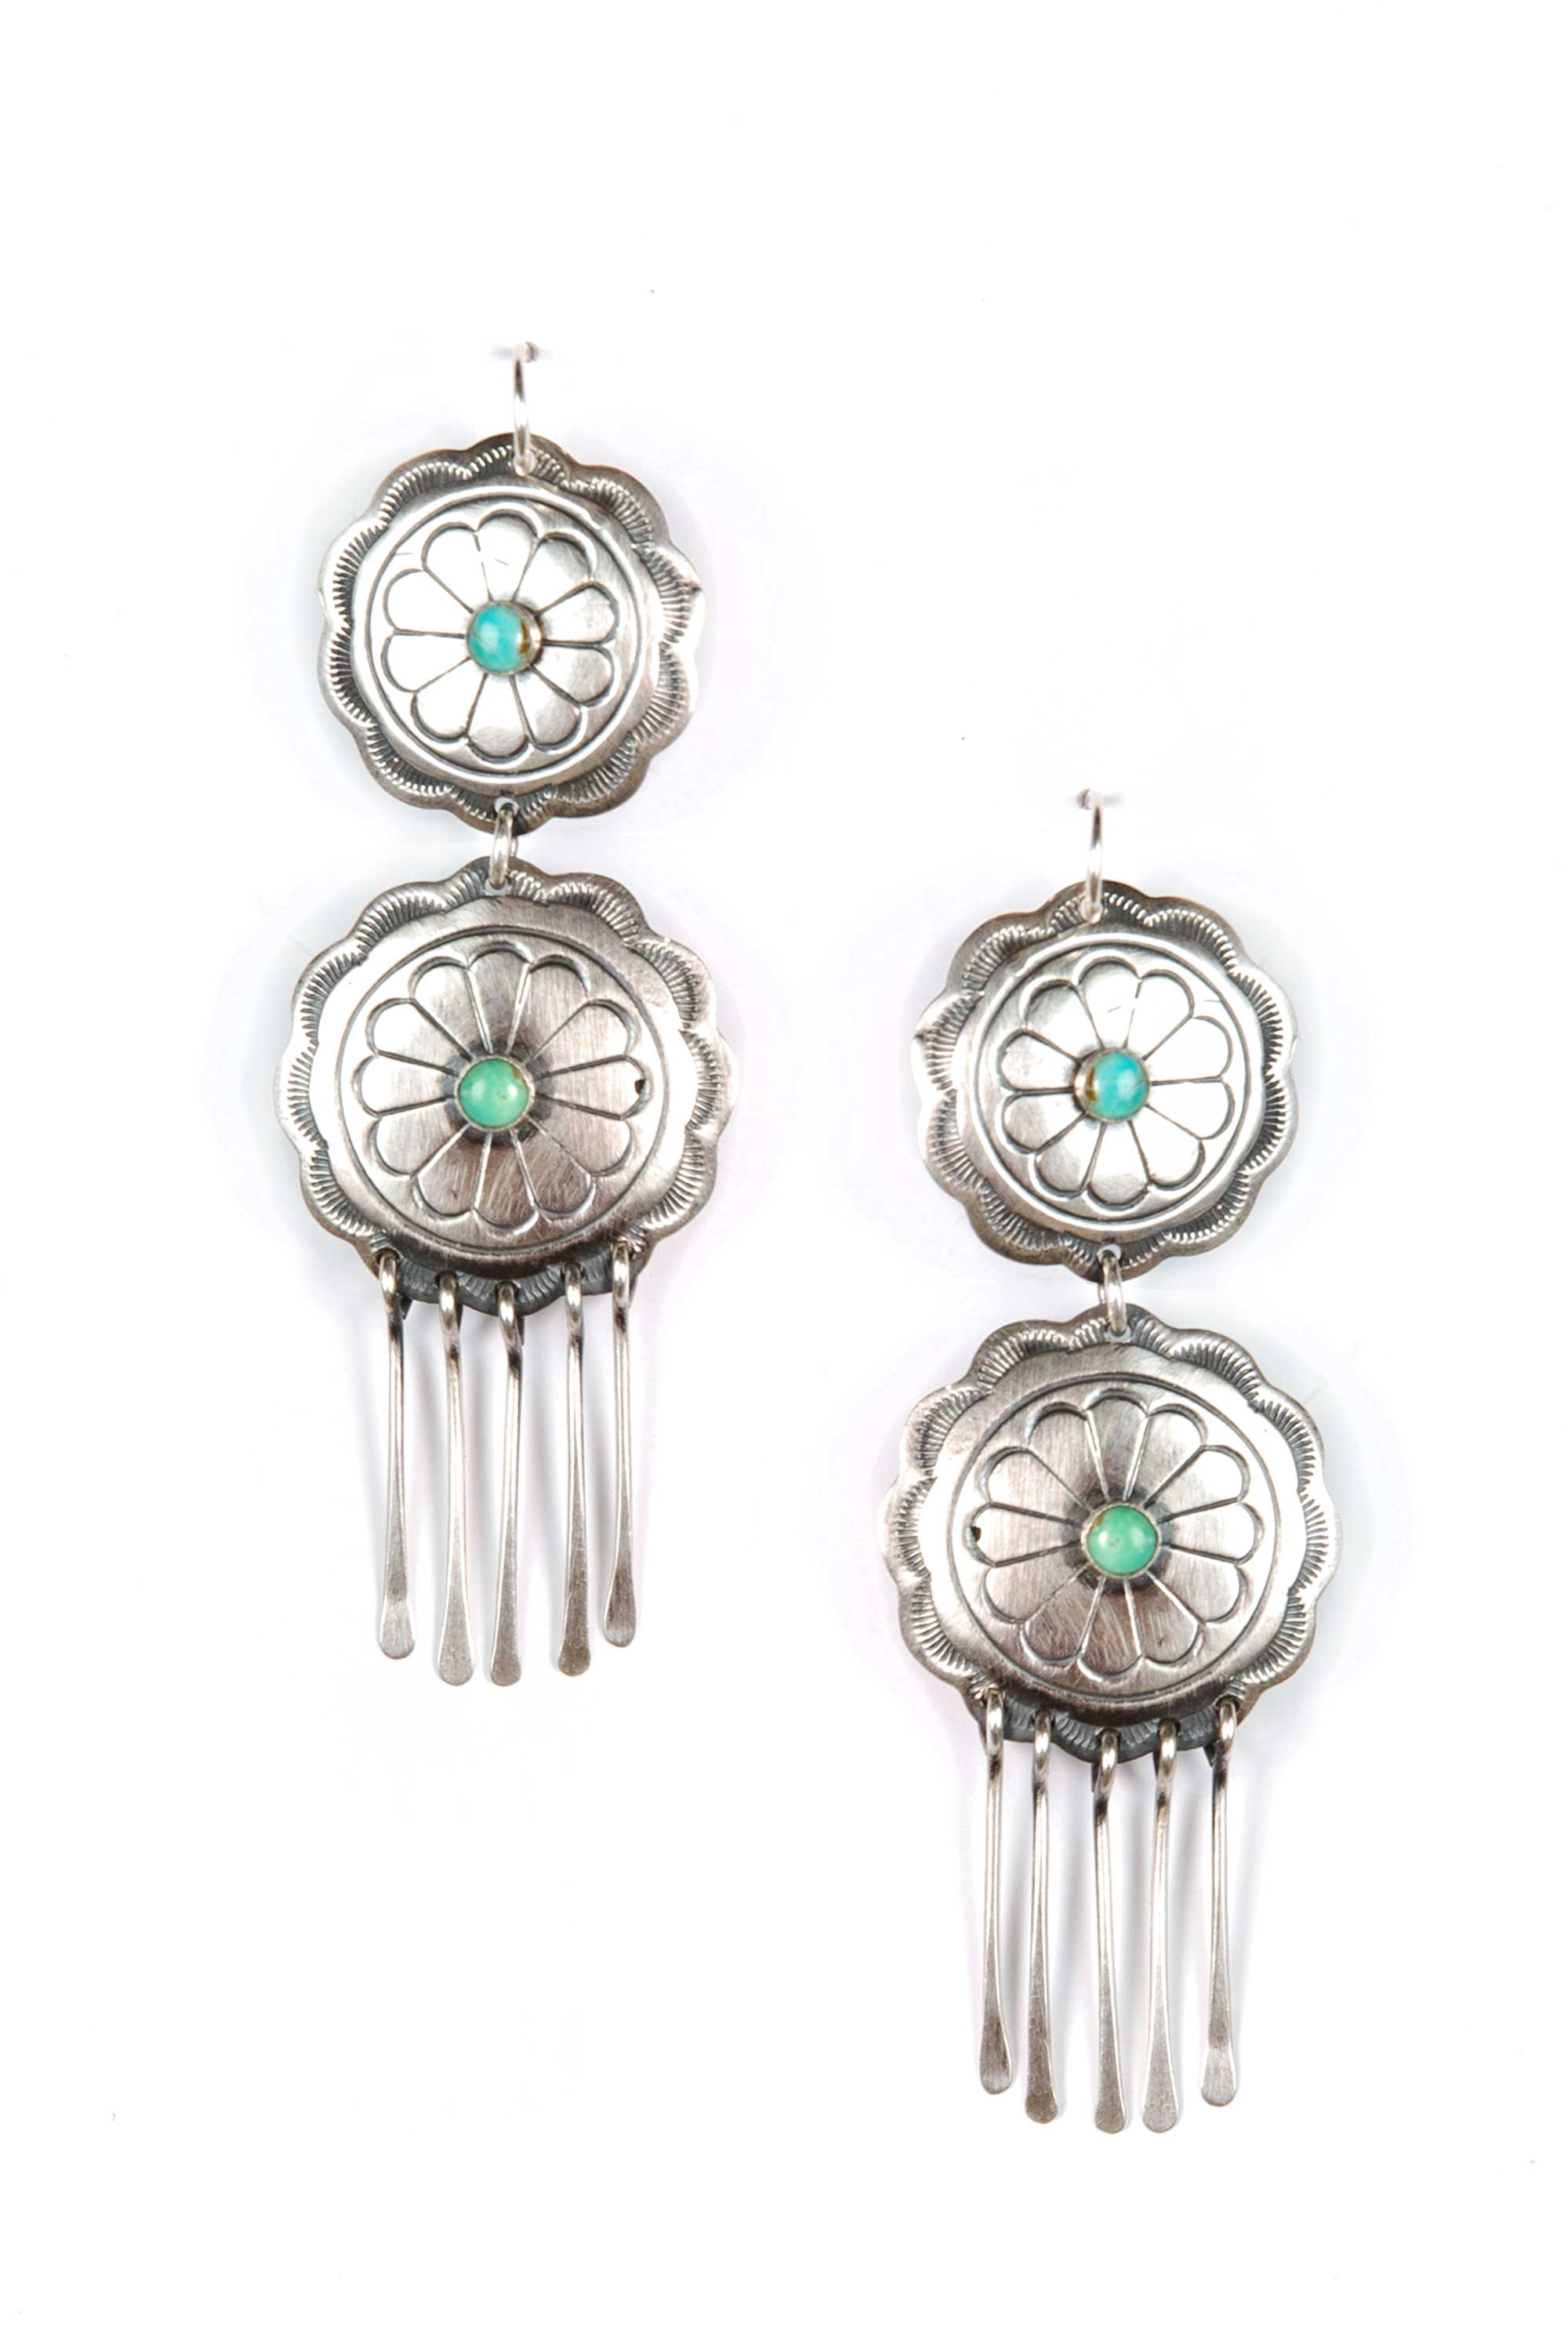 Earrings, Concho, Sterling Silver & Turquoise, Turquoise Wheel, 263